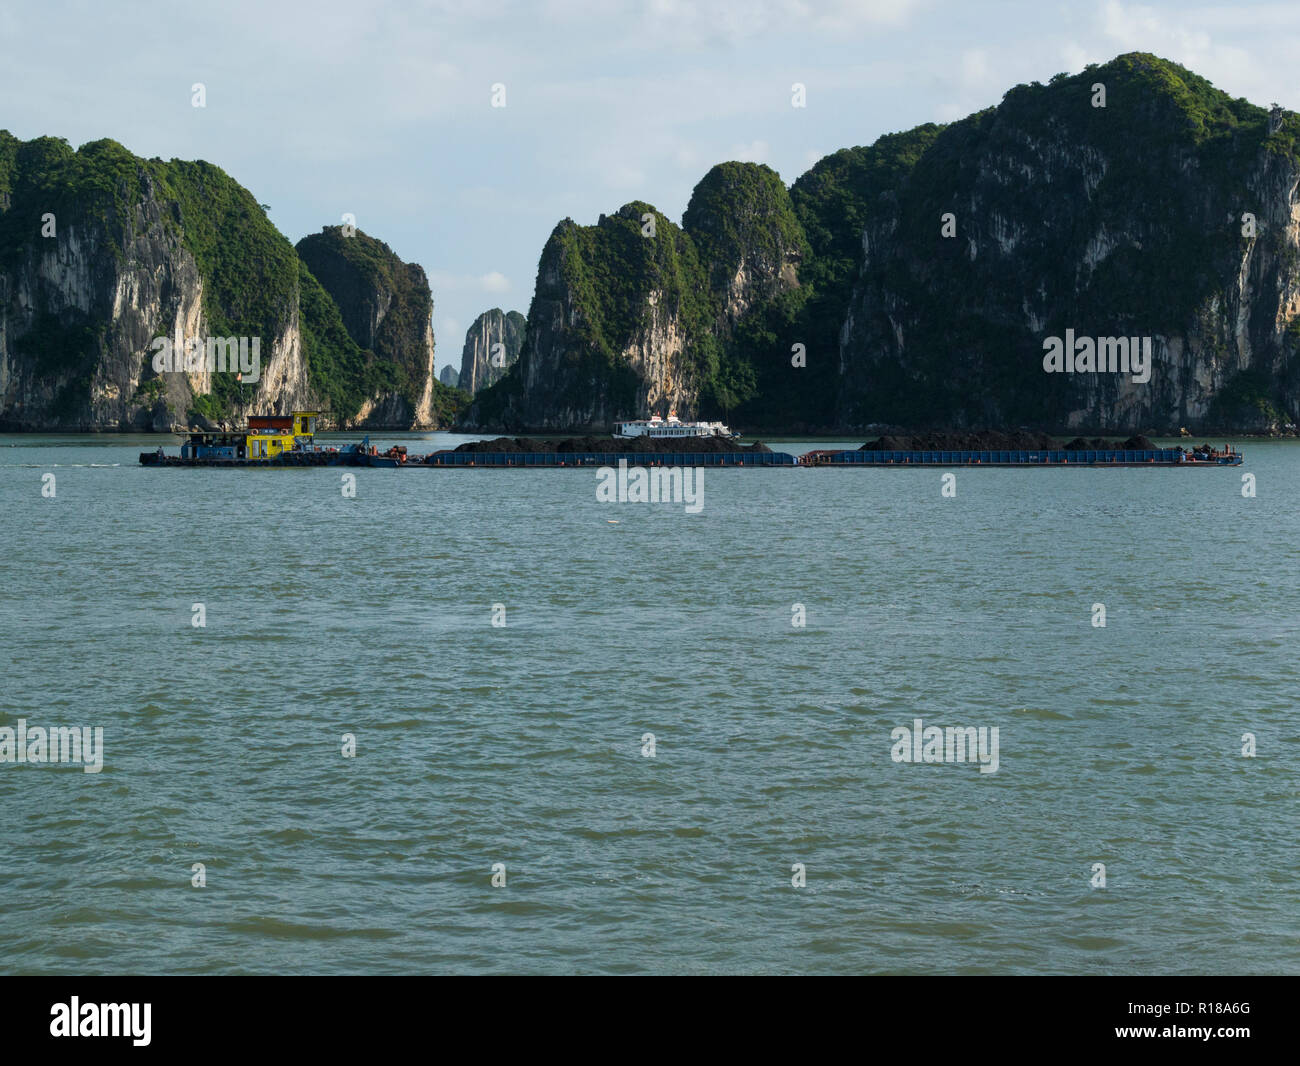 Tug pulling two barges filled with soil very low calm water travelling along Halong Bay South China Sea Vietnam Asia front of dramatic limestone cliff - Stock Image